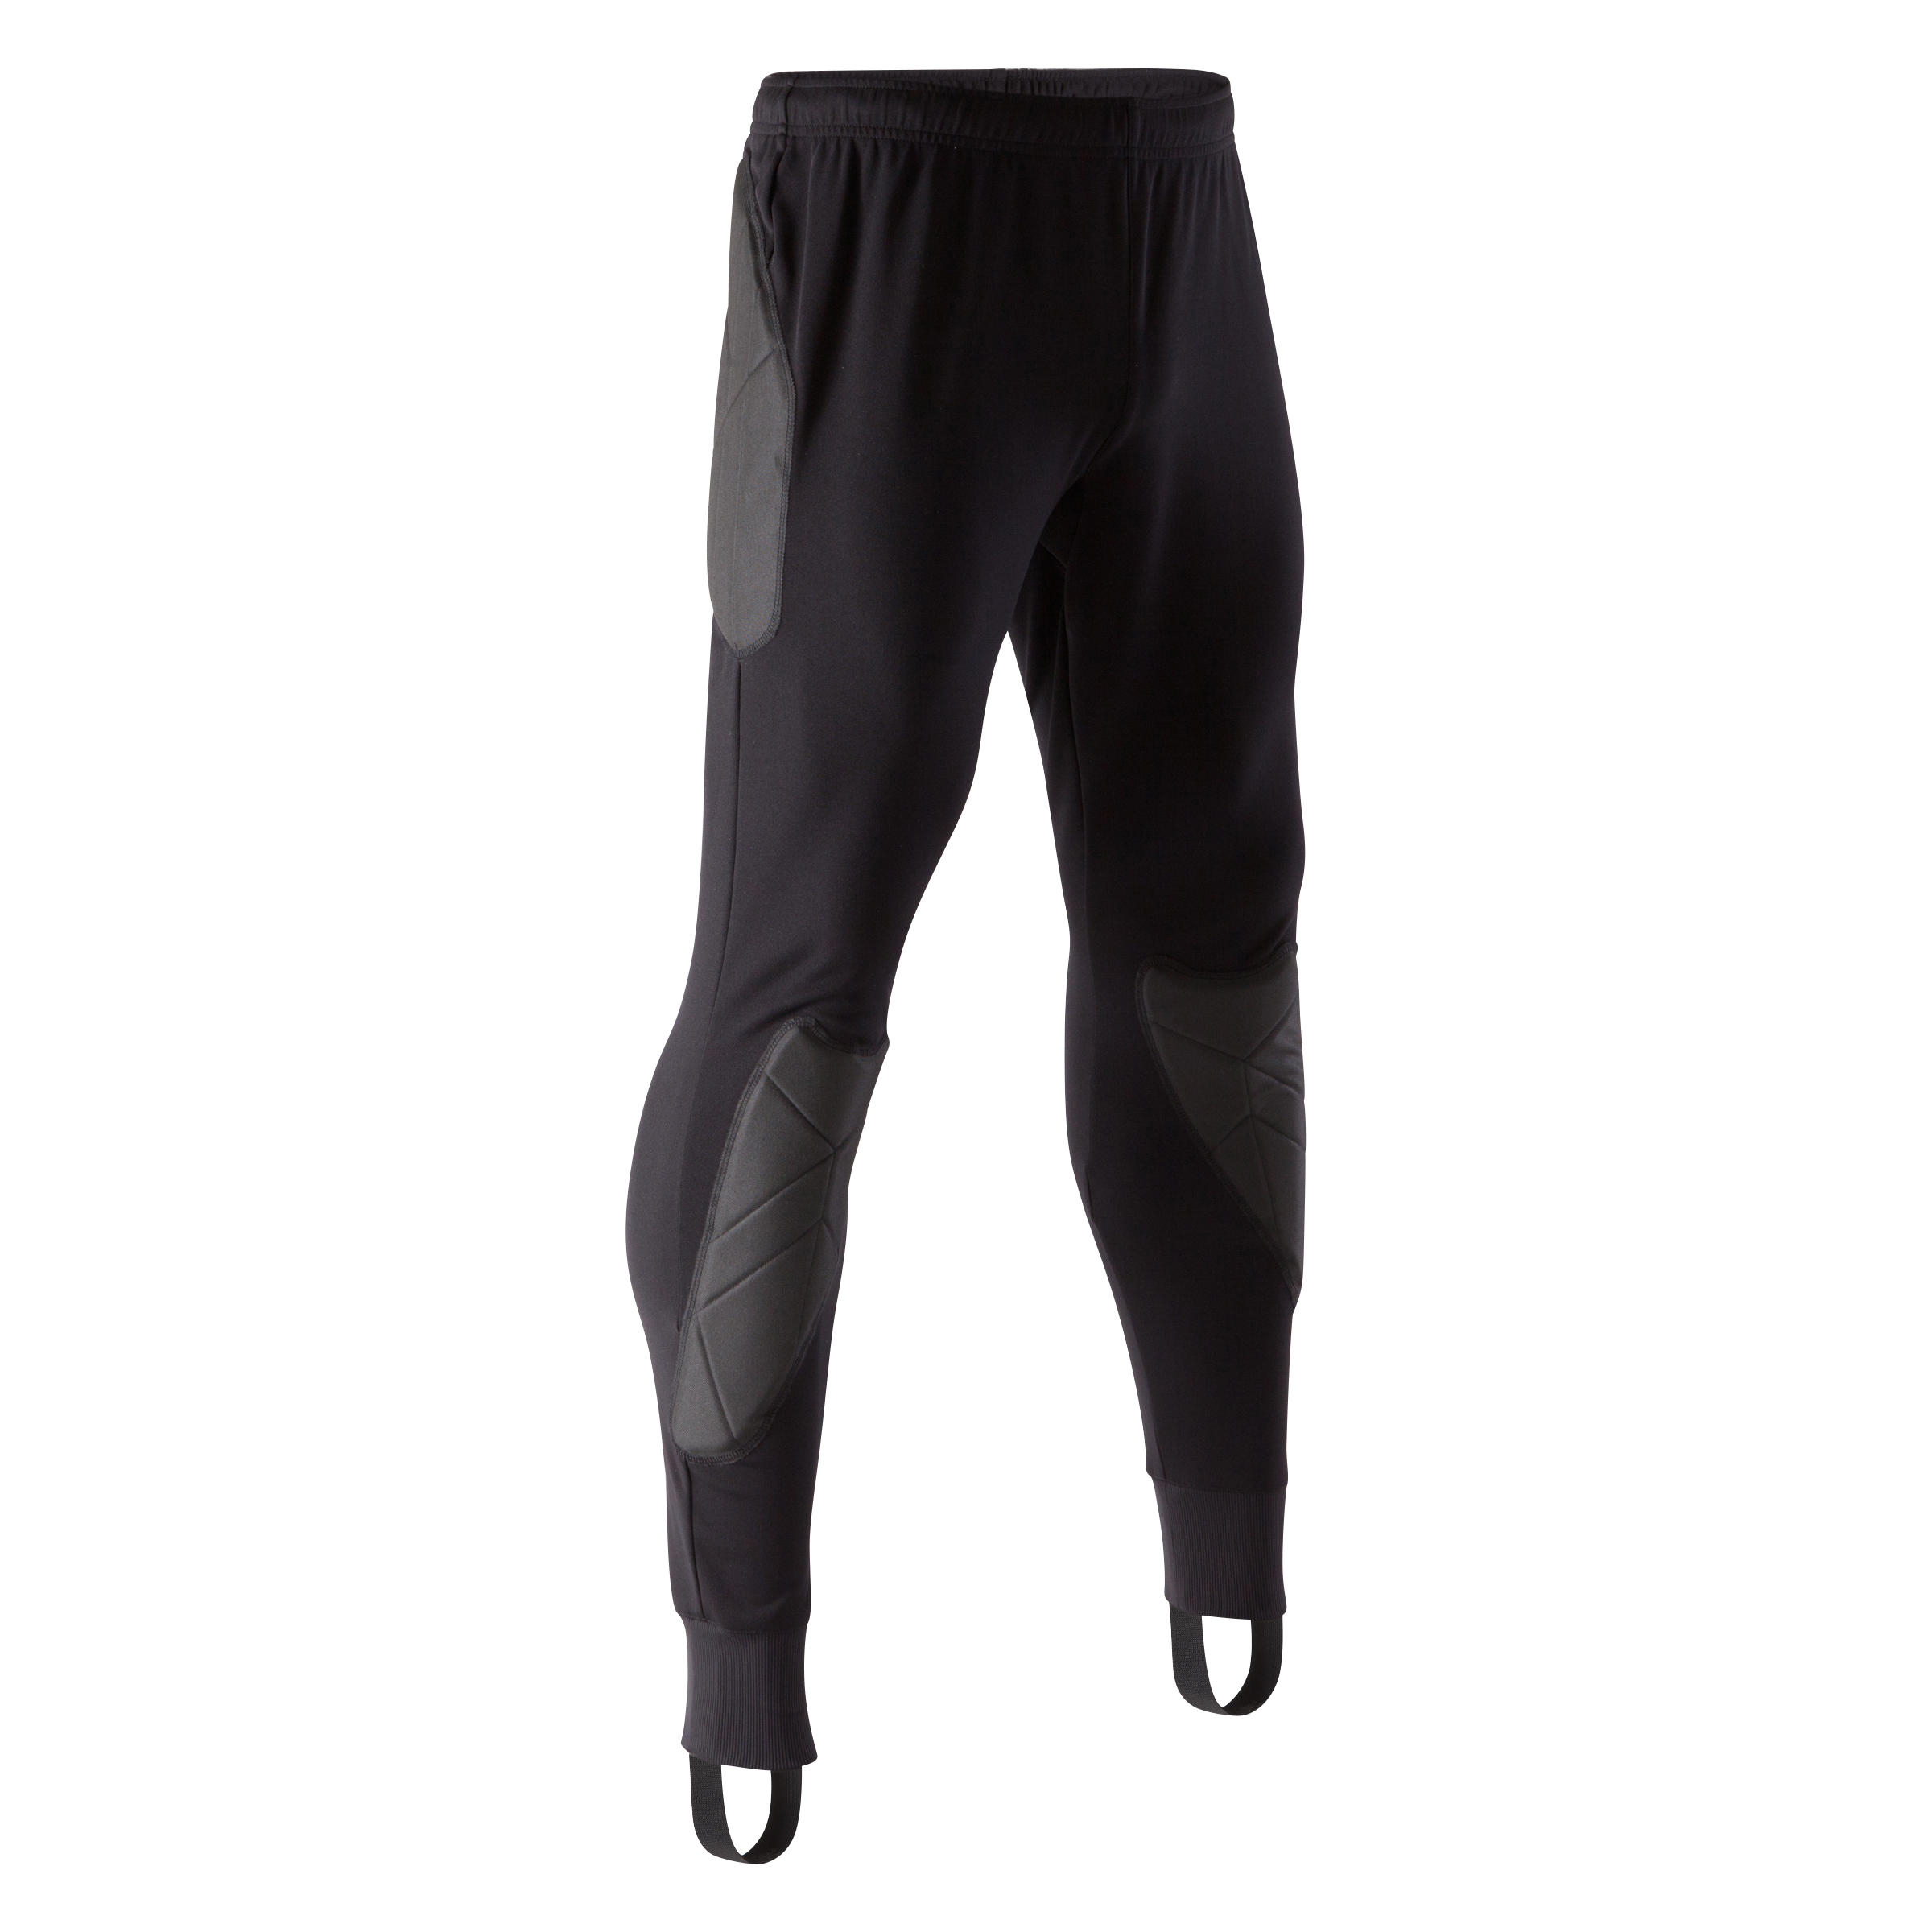 Pantalon de gardien de but F100 noir